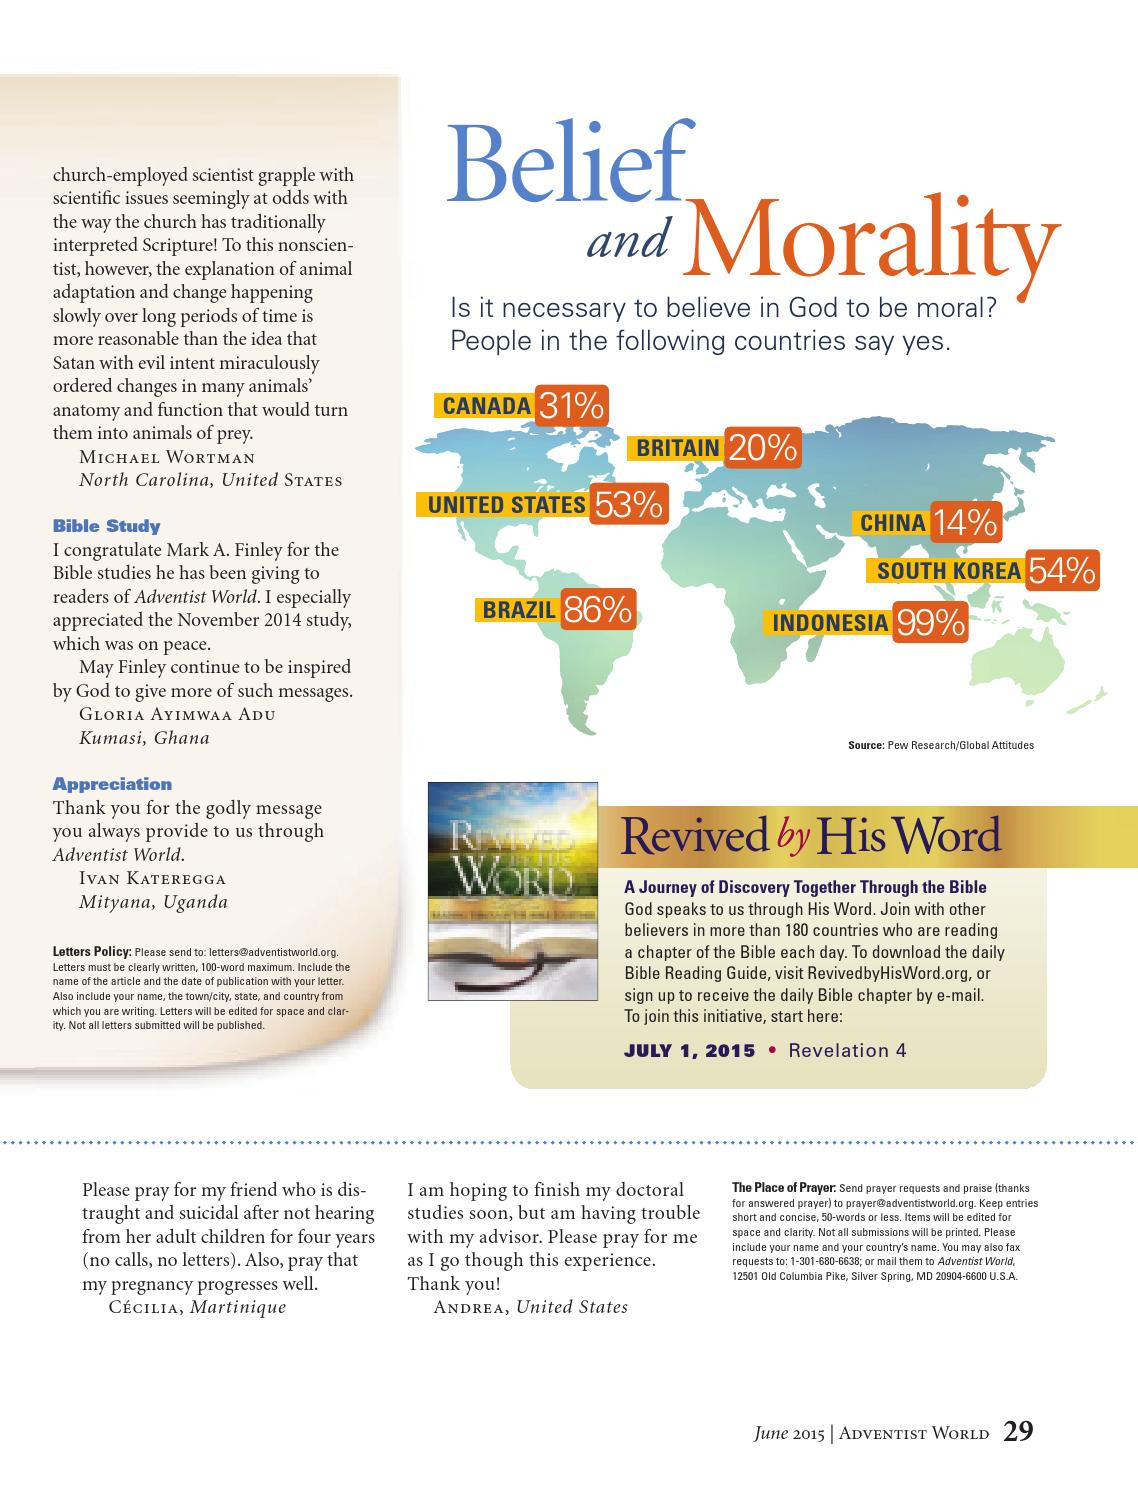 Adventist World - June 13, 2015 by Adventist Record - issuu